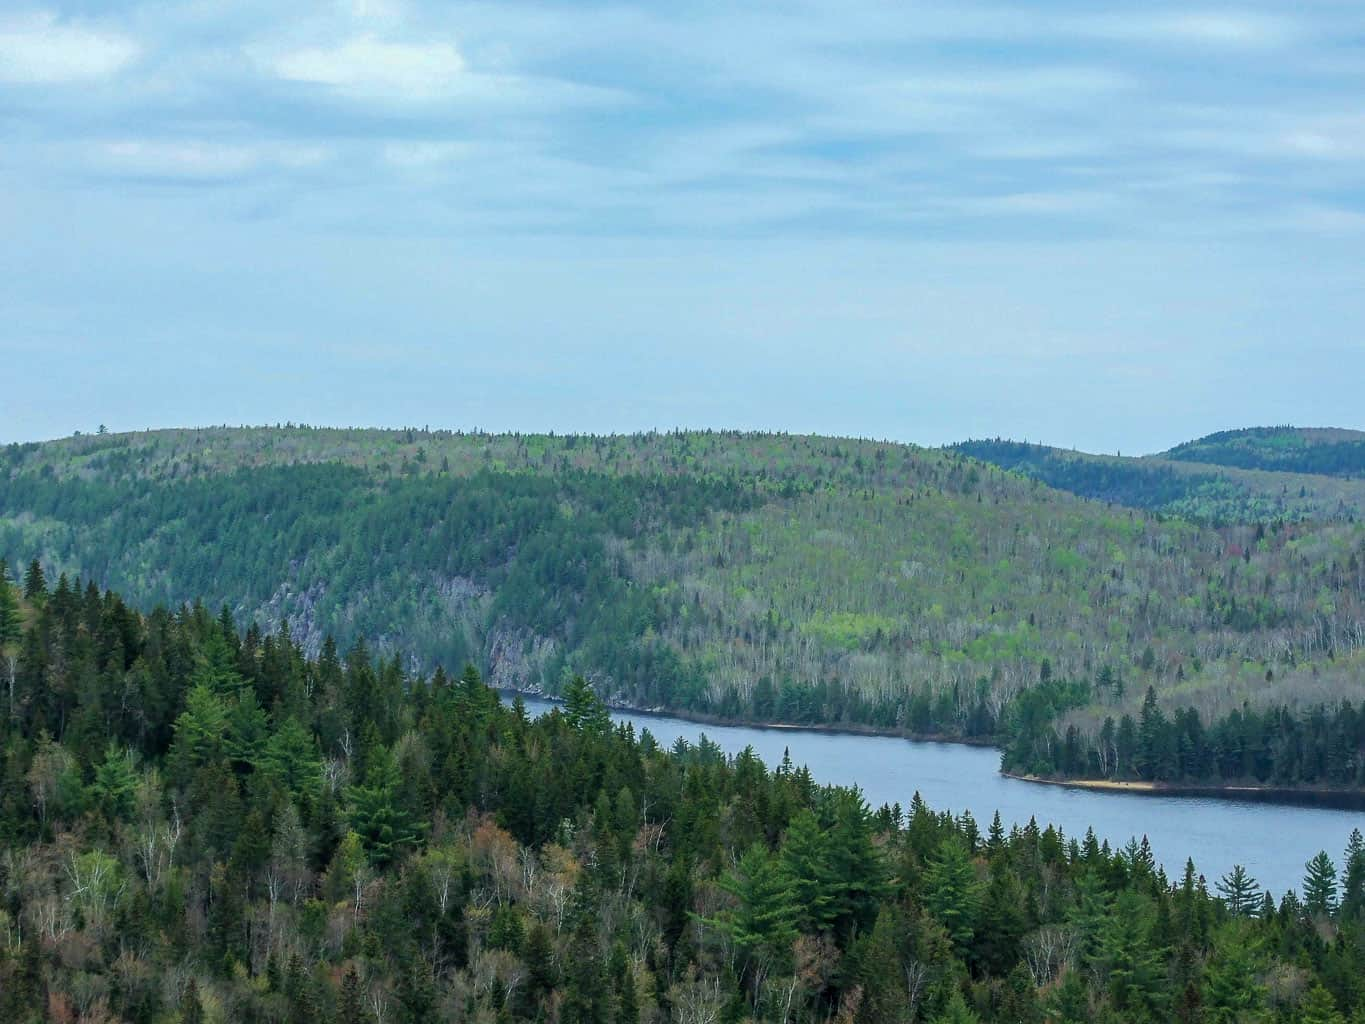 La Mauricie National Park is one of the best national parks in Canada